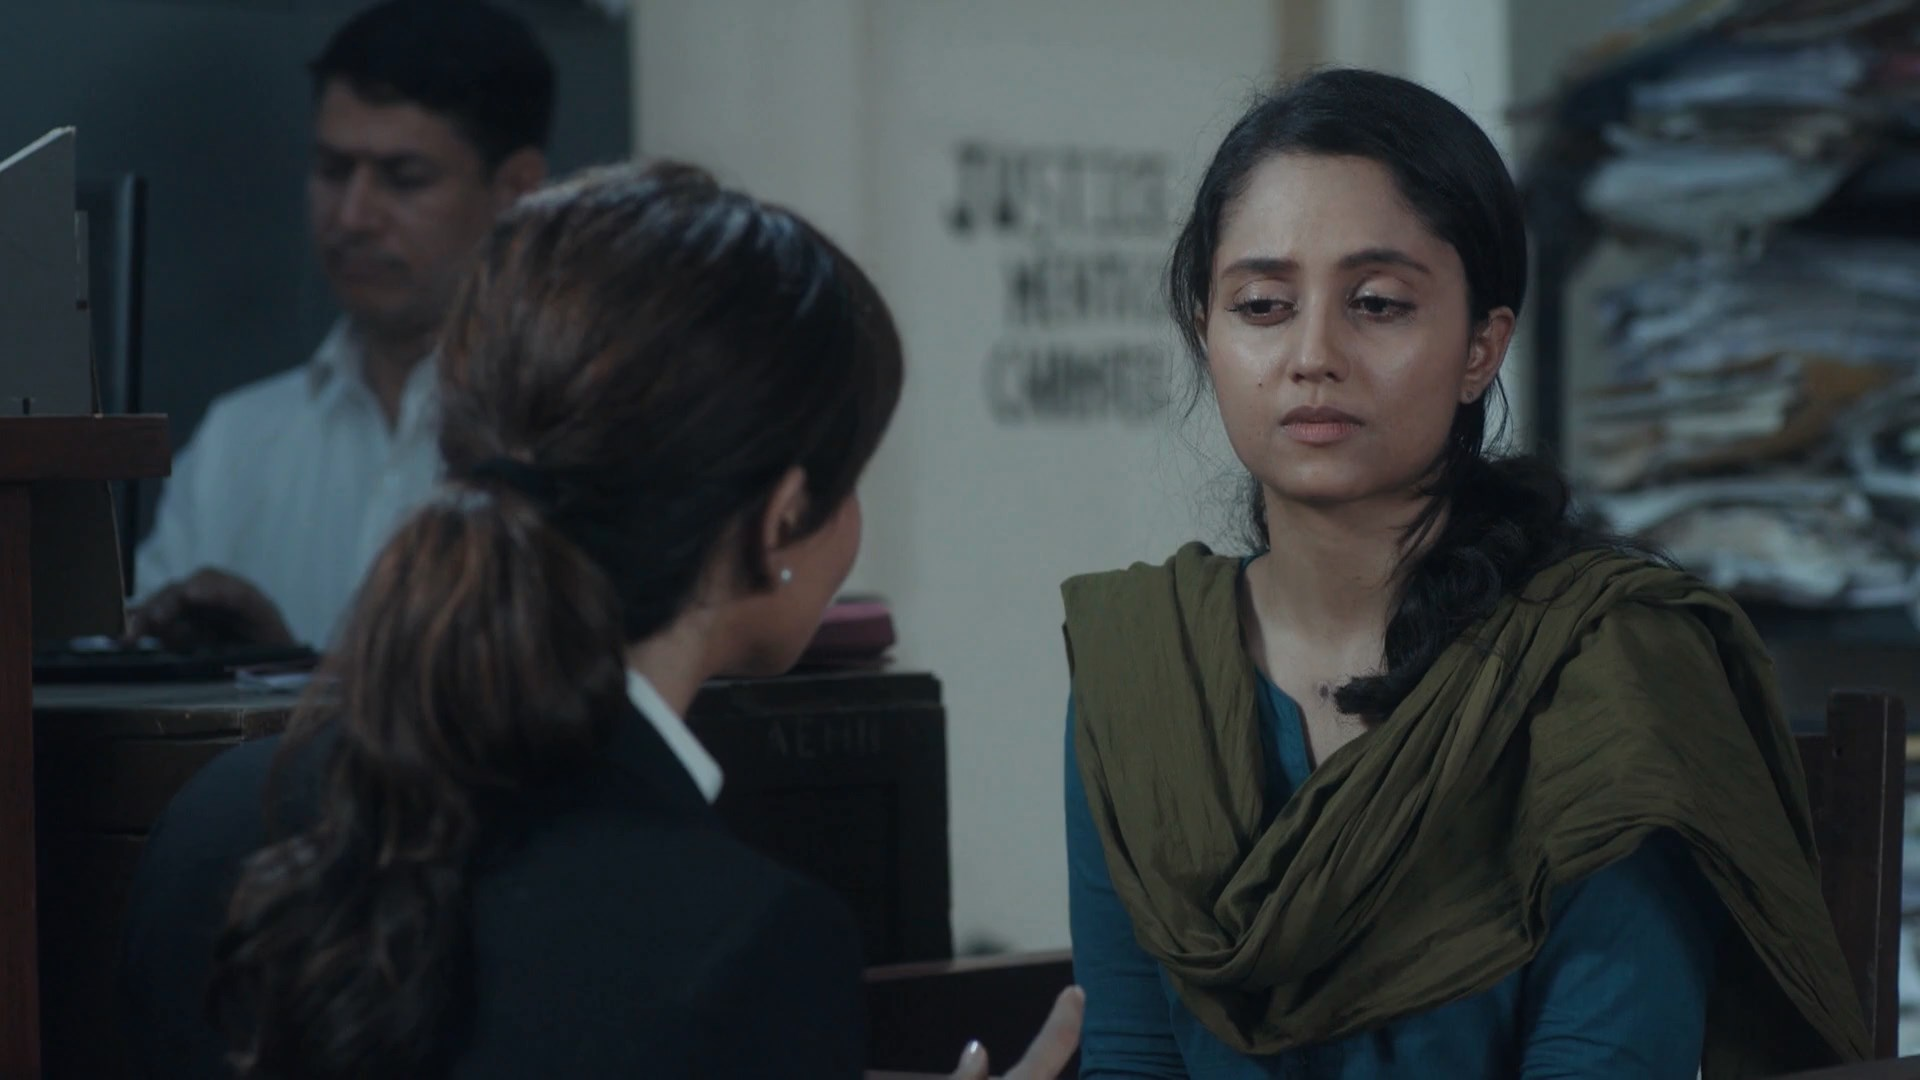 Illegal23d4558 - Illegal 2020 Hindi S01 Voot Select Complete Web Series 480p HDRip 900MB x264 AAC